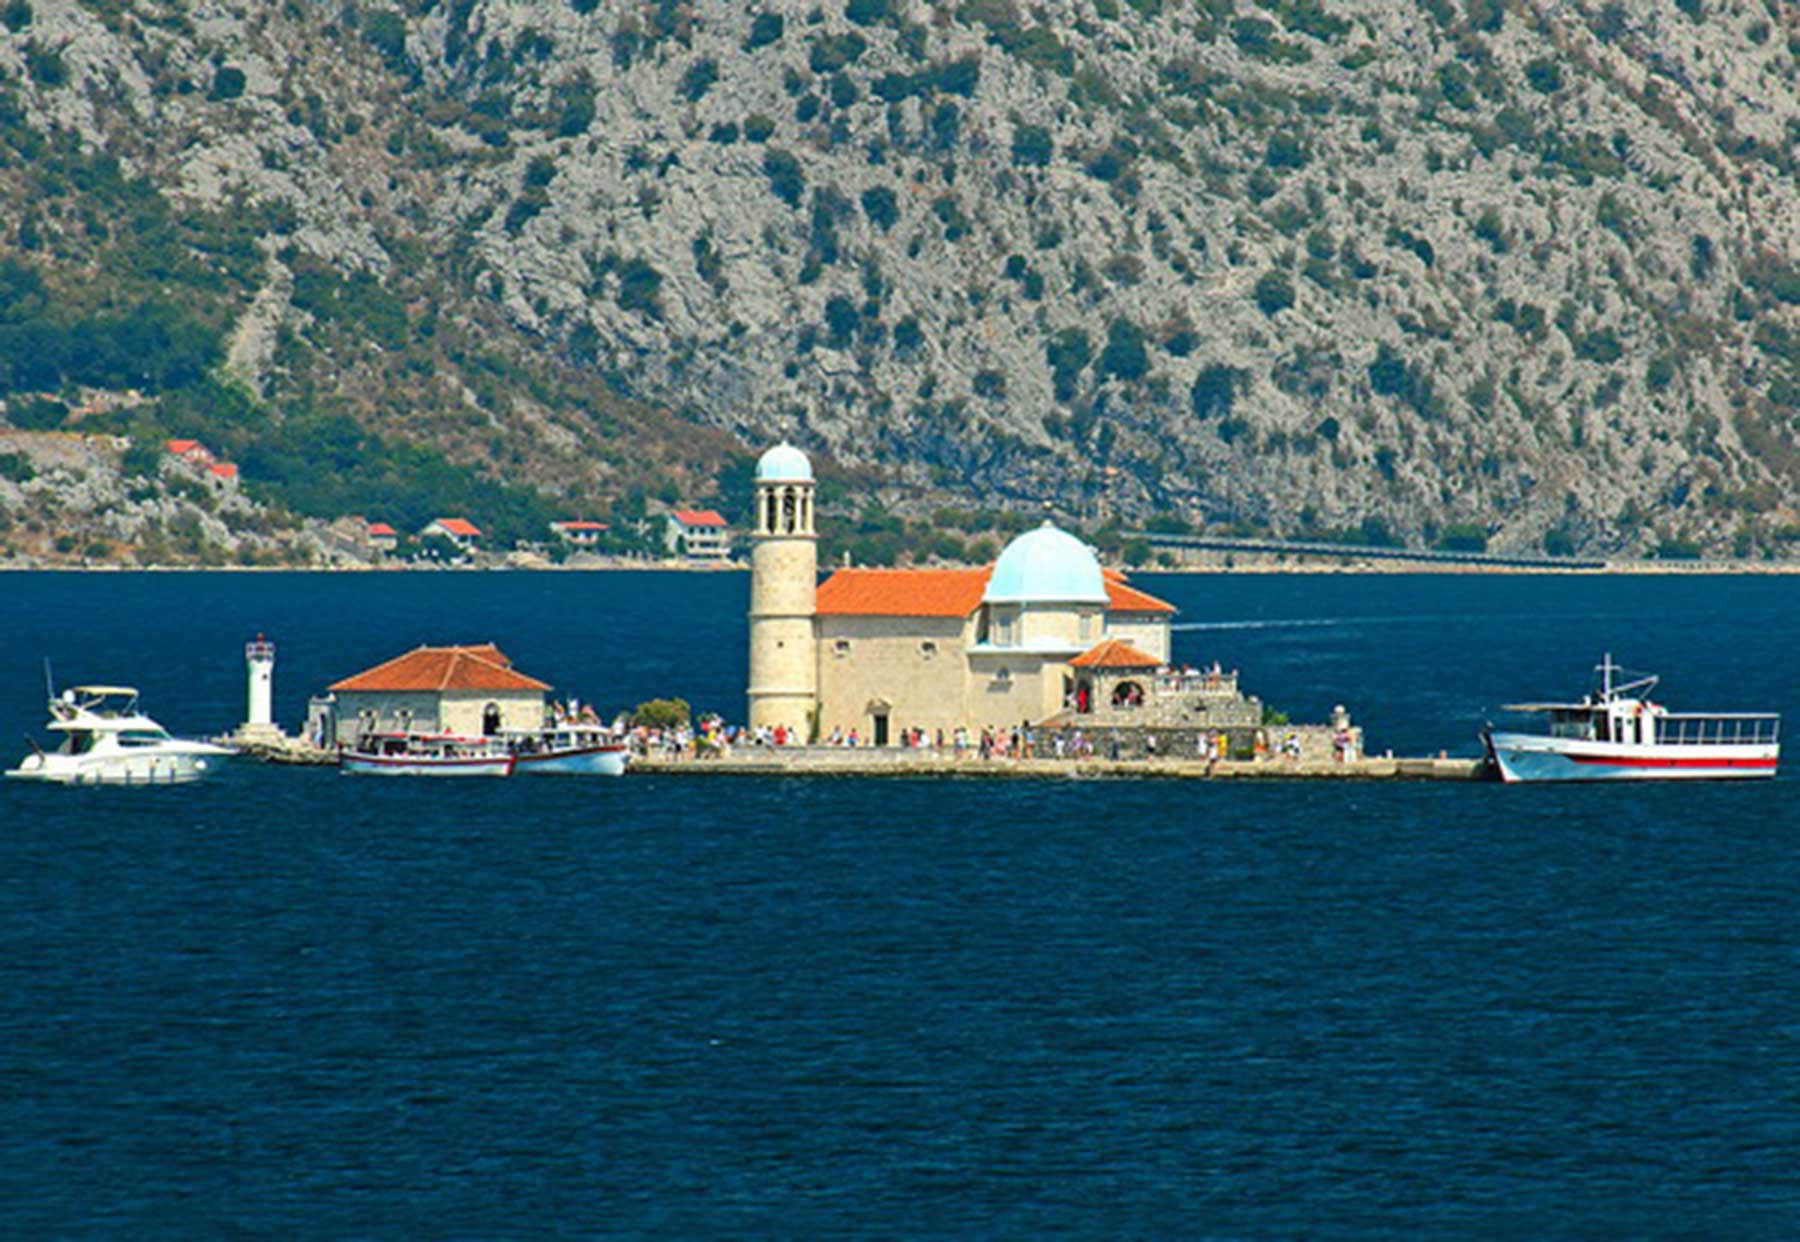 Private boat tour of Montenegro Boka bay from Dubrovnik